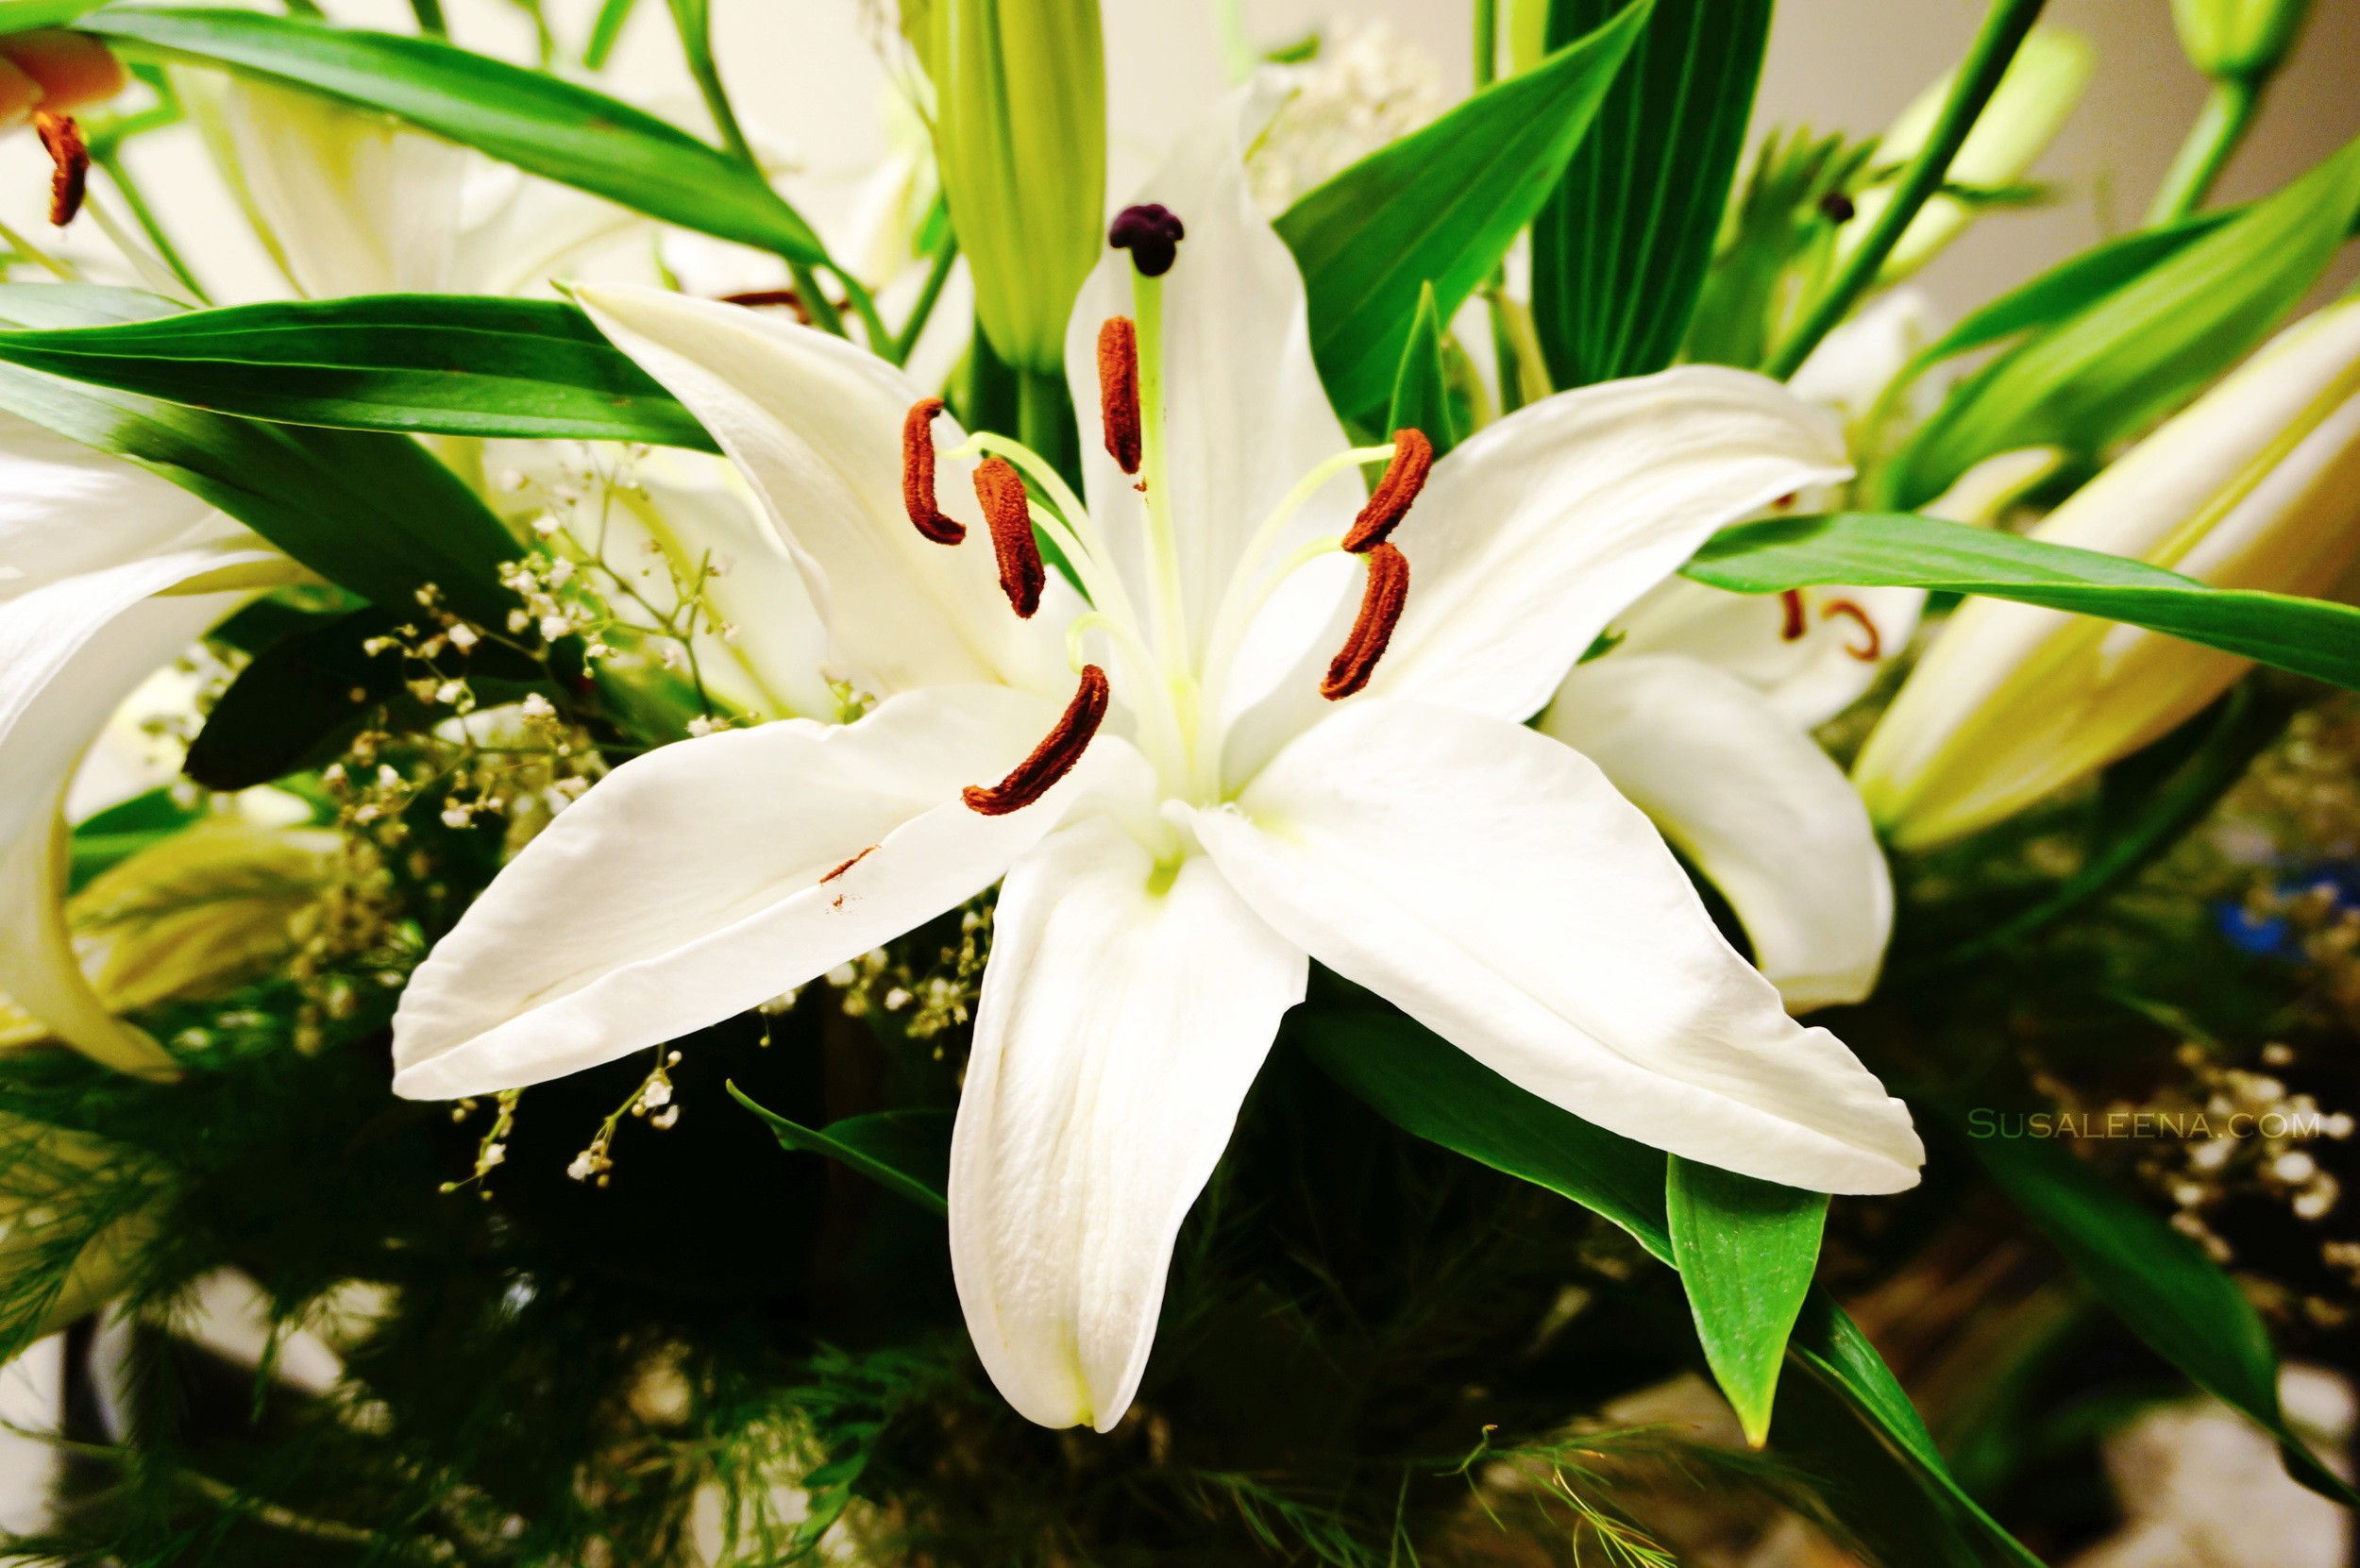 Close-up of one of the Lilies, there were about 47 blooms total!